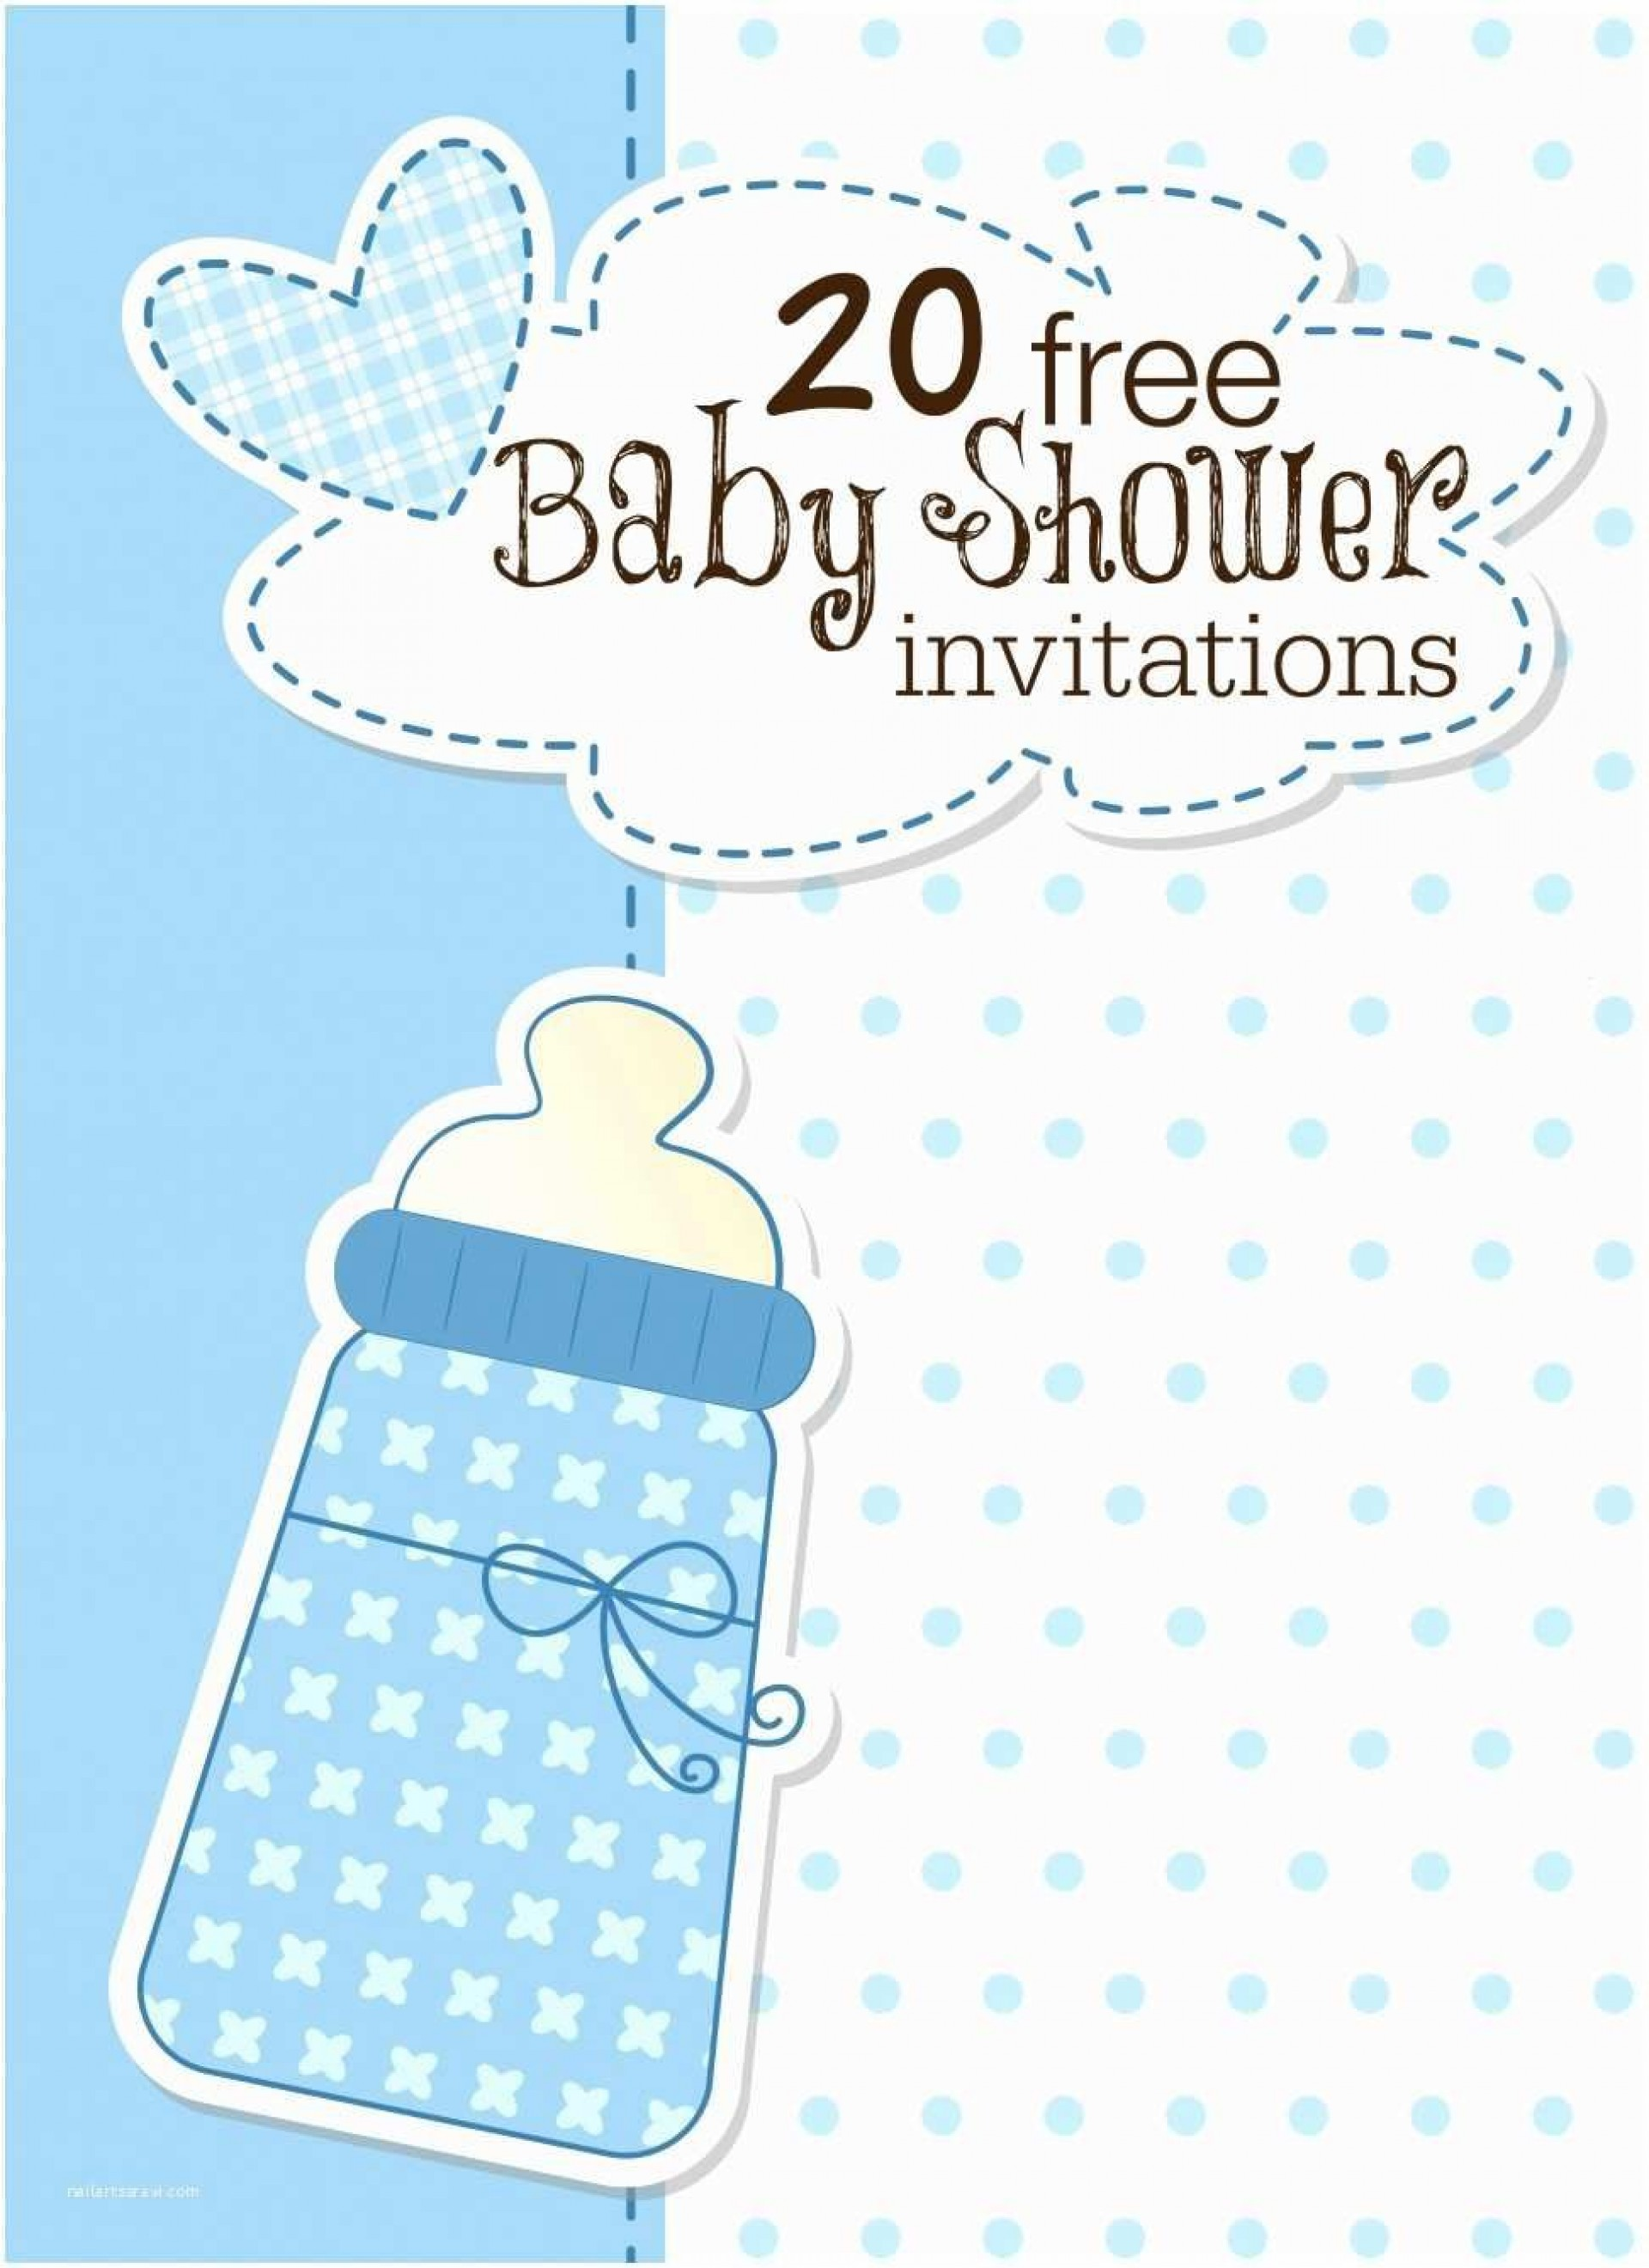 009 Imposing Baby Shower Invitation Free Template High Resolution  Templates Online Printable E-invitation Card Design Download1920